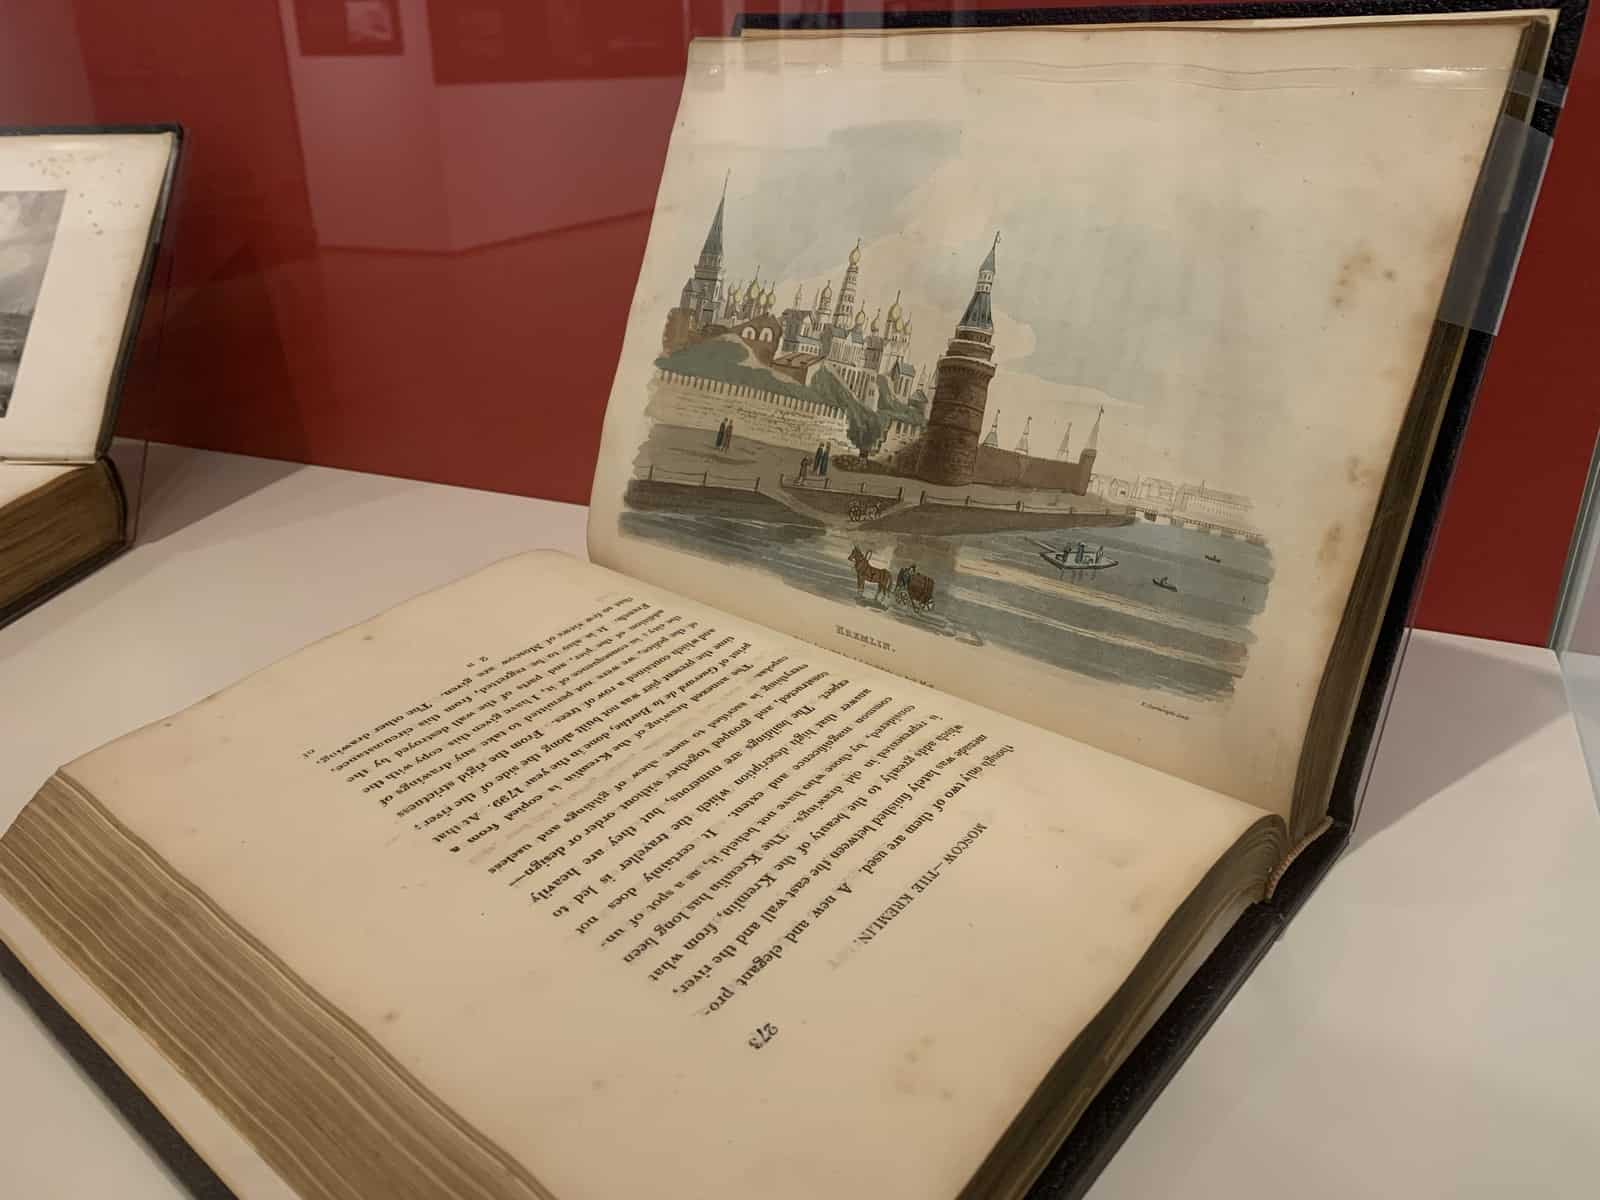 The book is open to a color illustration of the Kremlin. The Kremlin has several tall spires and sits along a riverfront.